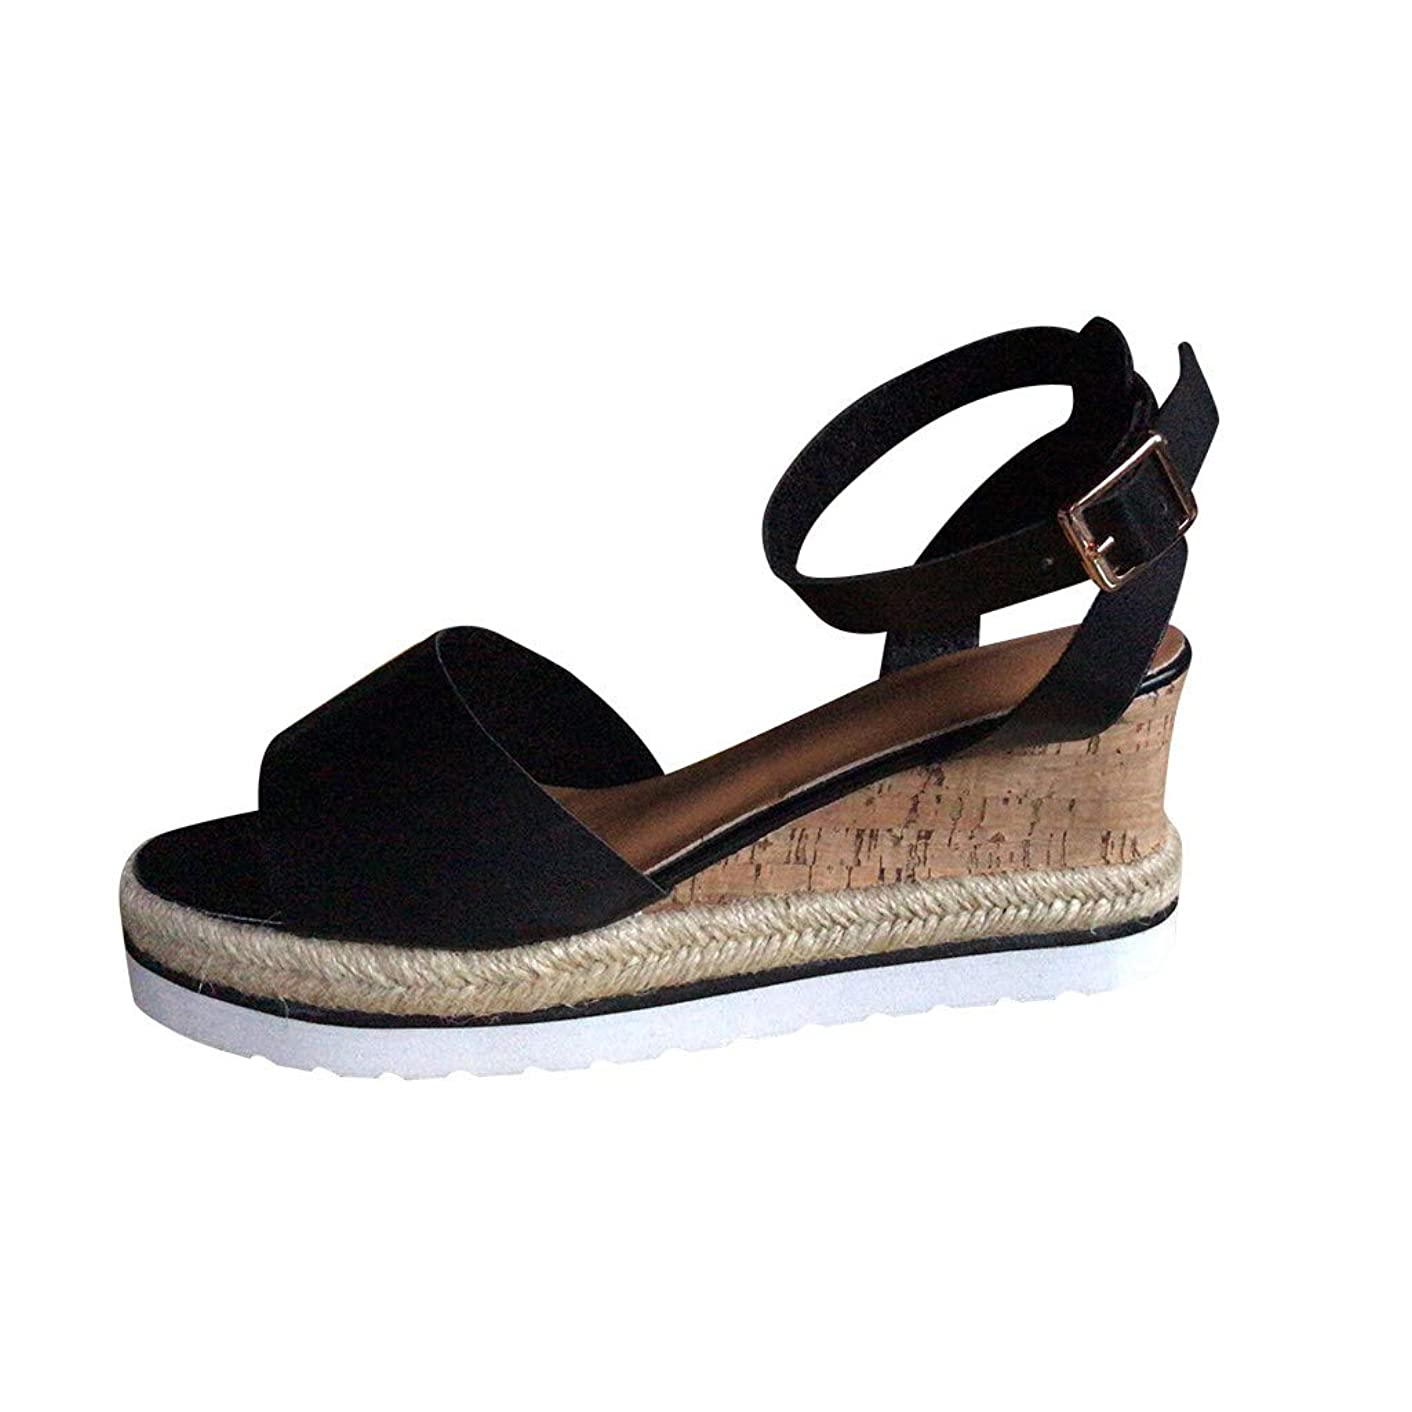 My Heat Women's Wedges Sandals Summer Fish Mouth High Platform Elastic Band Open Toe Slingback Ankle Strap Shoes